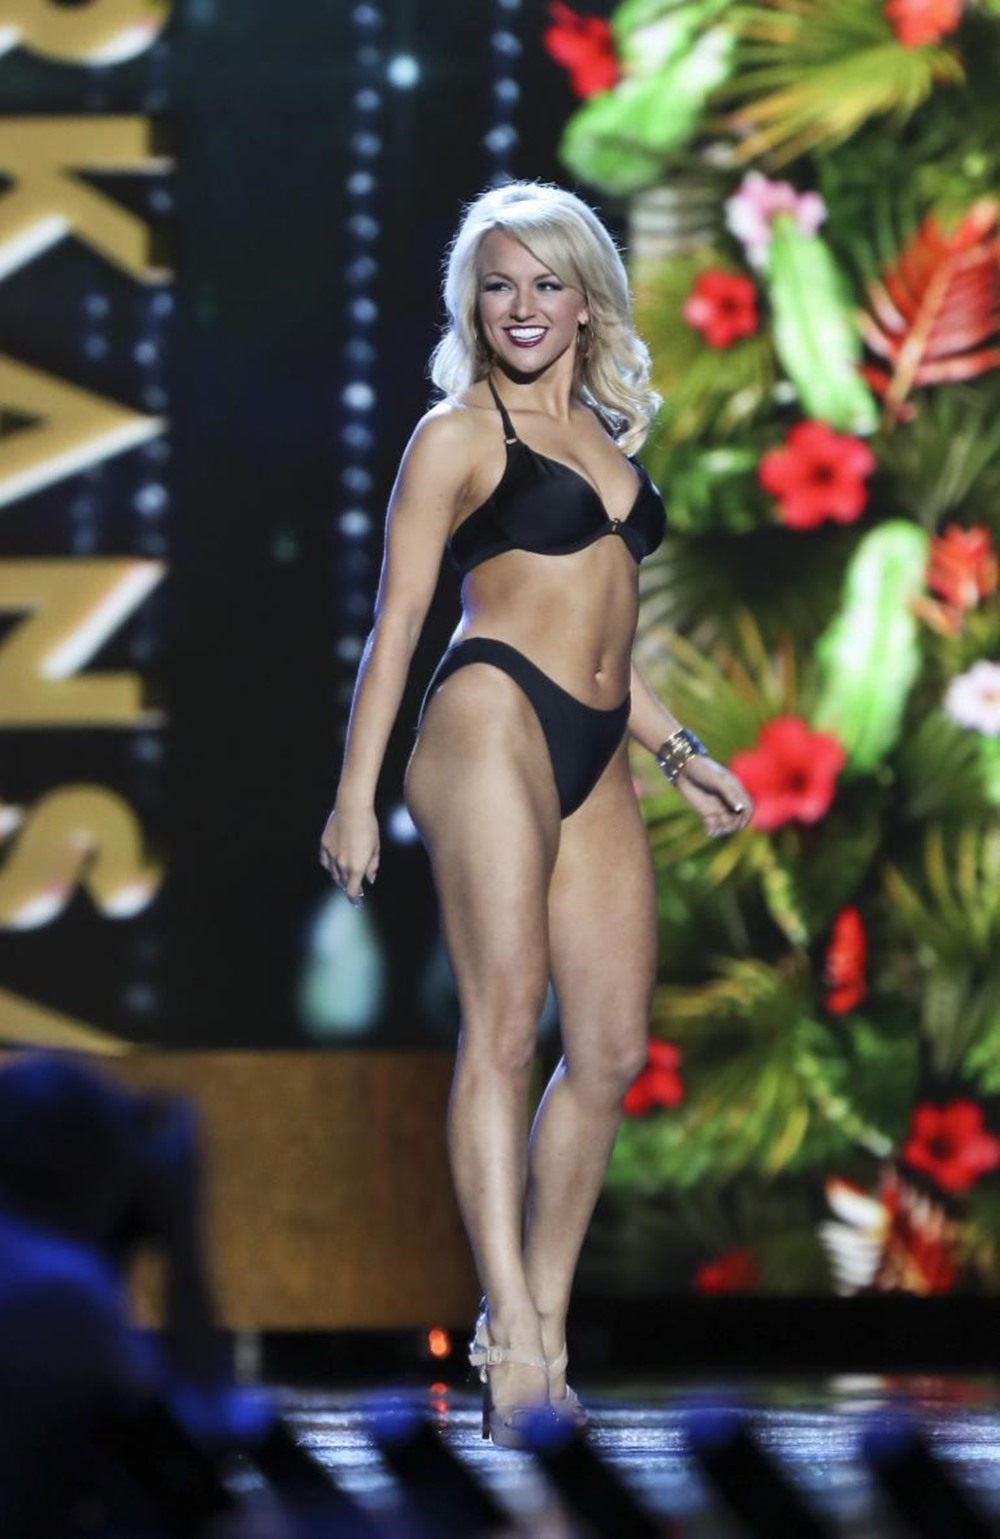 Miss America Contestants 2016: Bikini Highlights From Miss America 2017